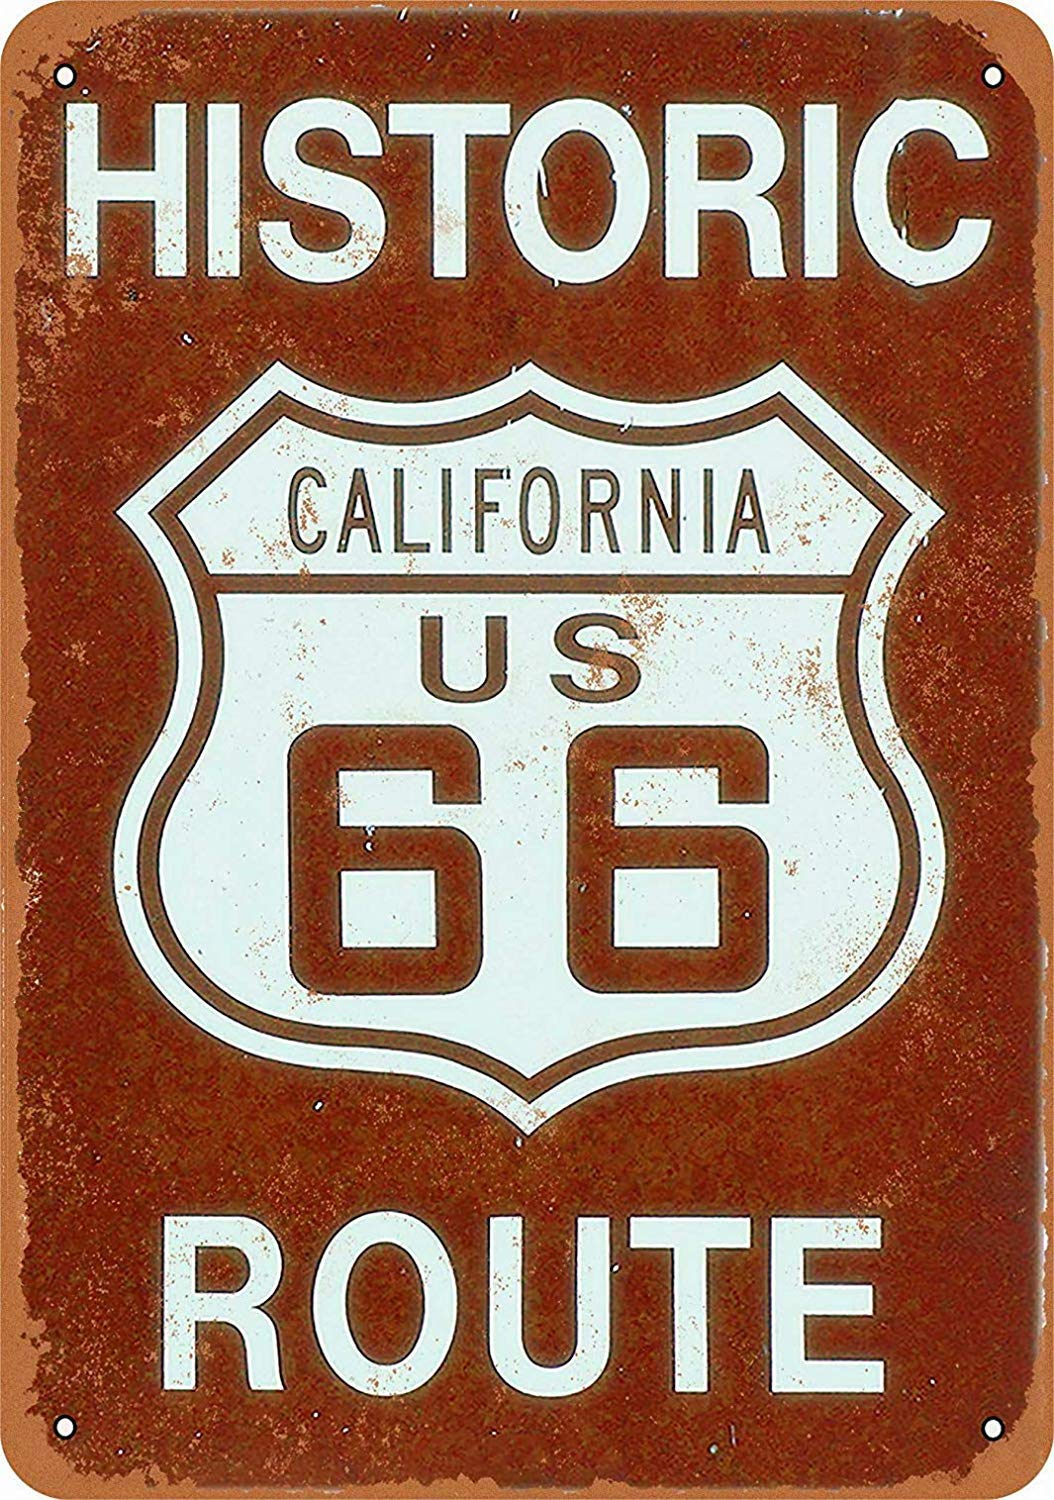 California Route 66 Póster de Pared Metal Creativo Placa ...